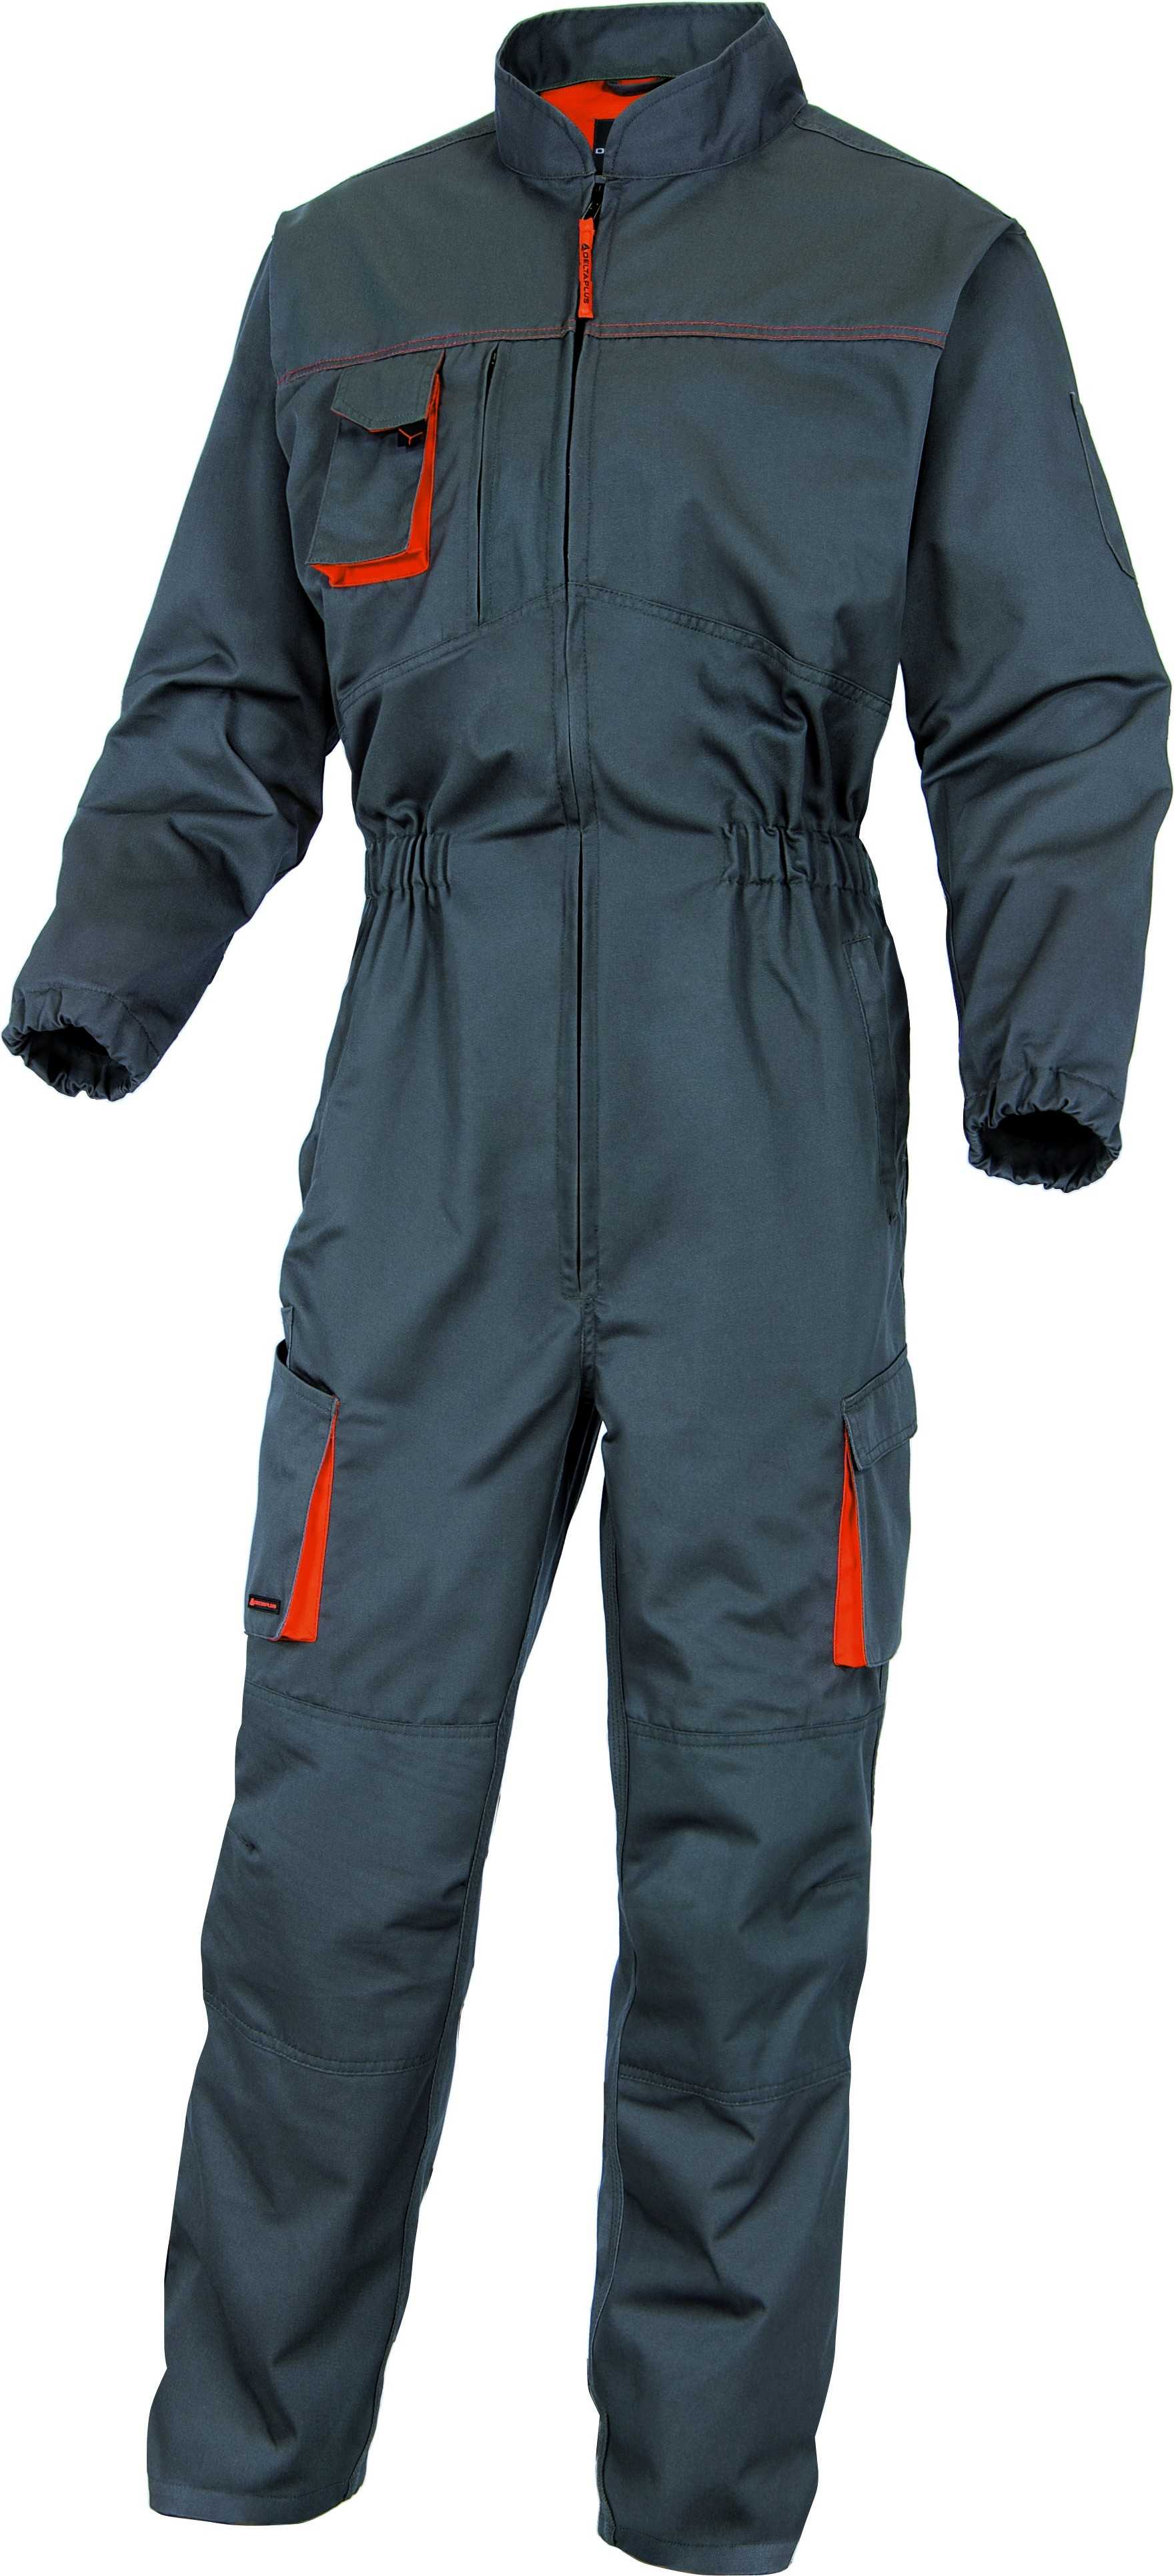 Delta Plus M2CO2 Mach2 Overall - Choose Size and Colour